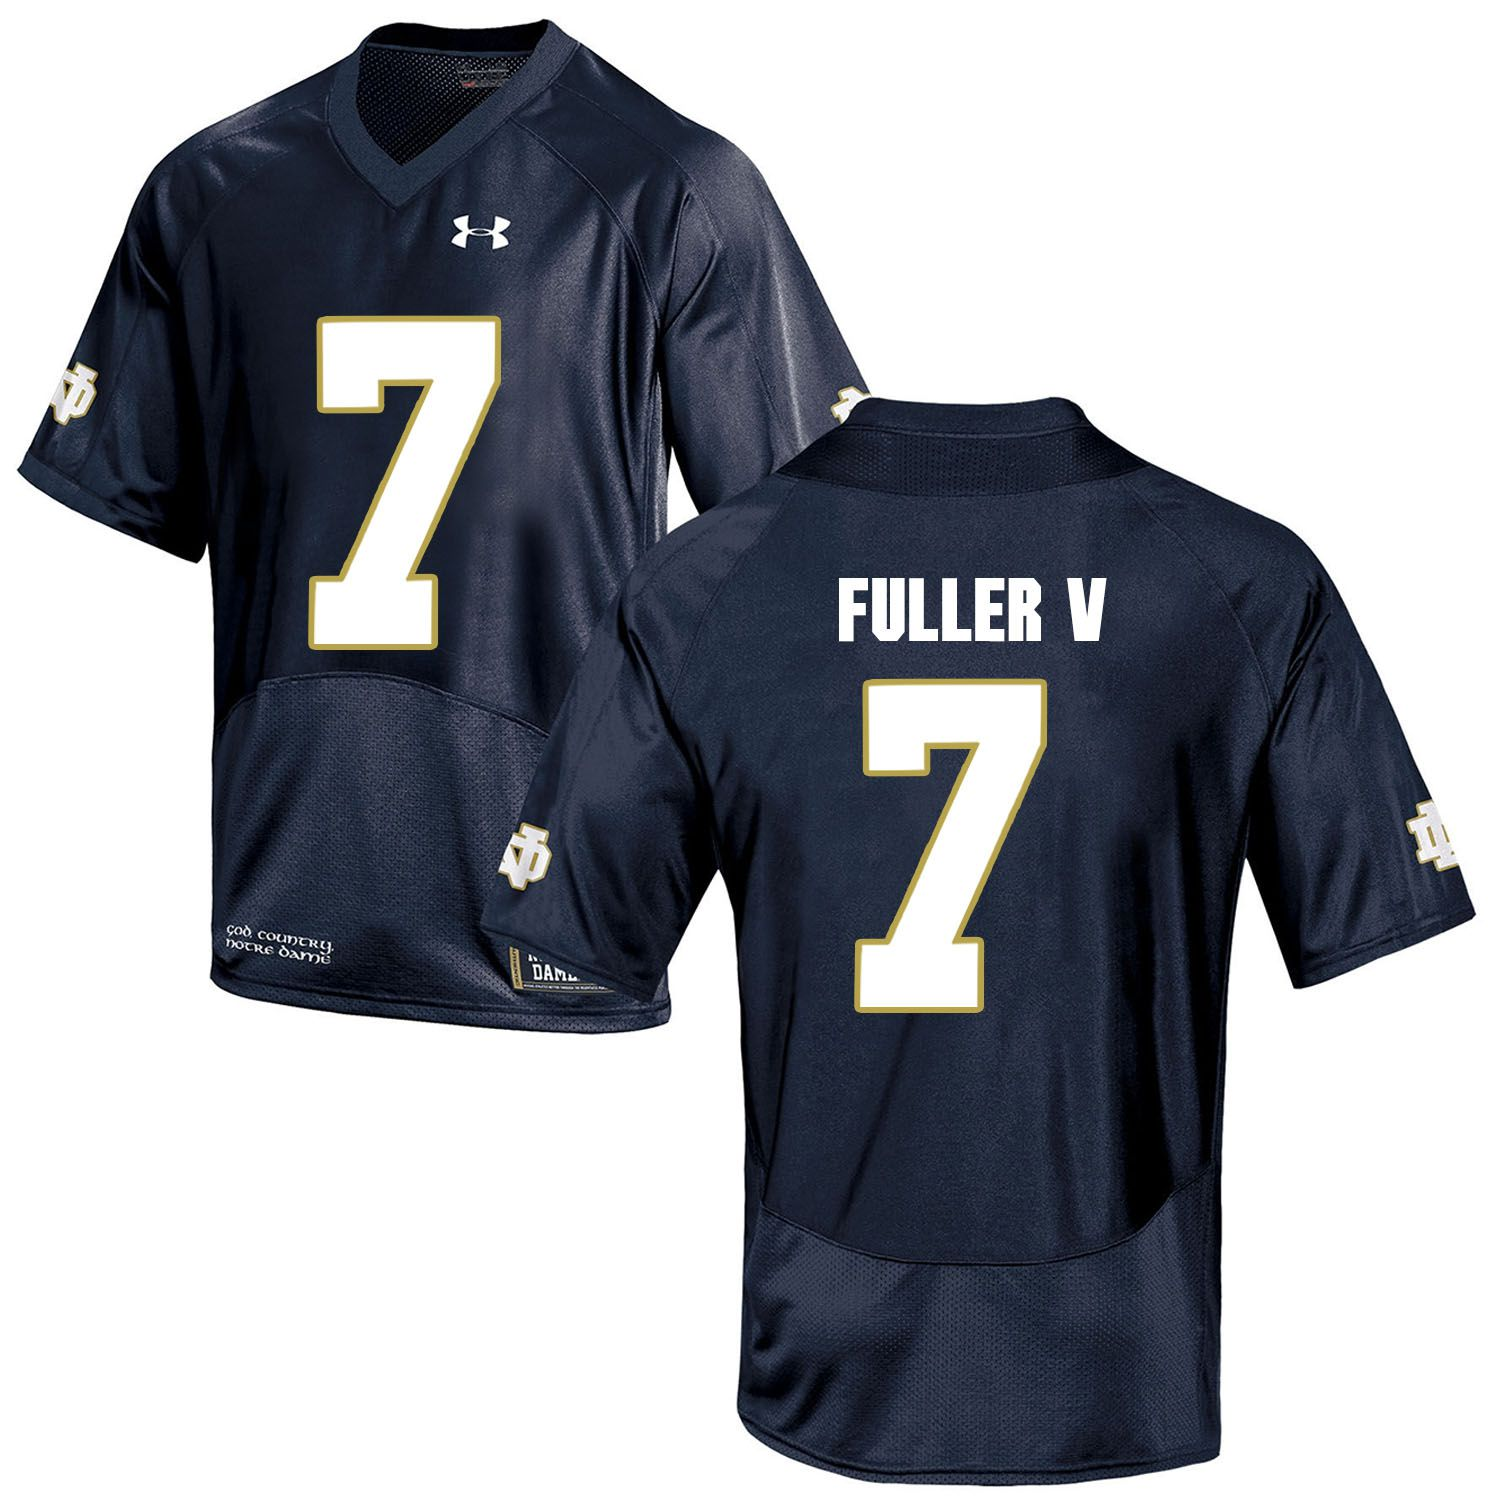 Men Norte Dame Fighting Irish 7 Fuller v Navy Blue Customized NCAA Jerseys